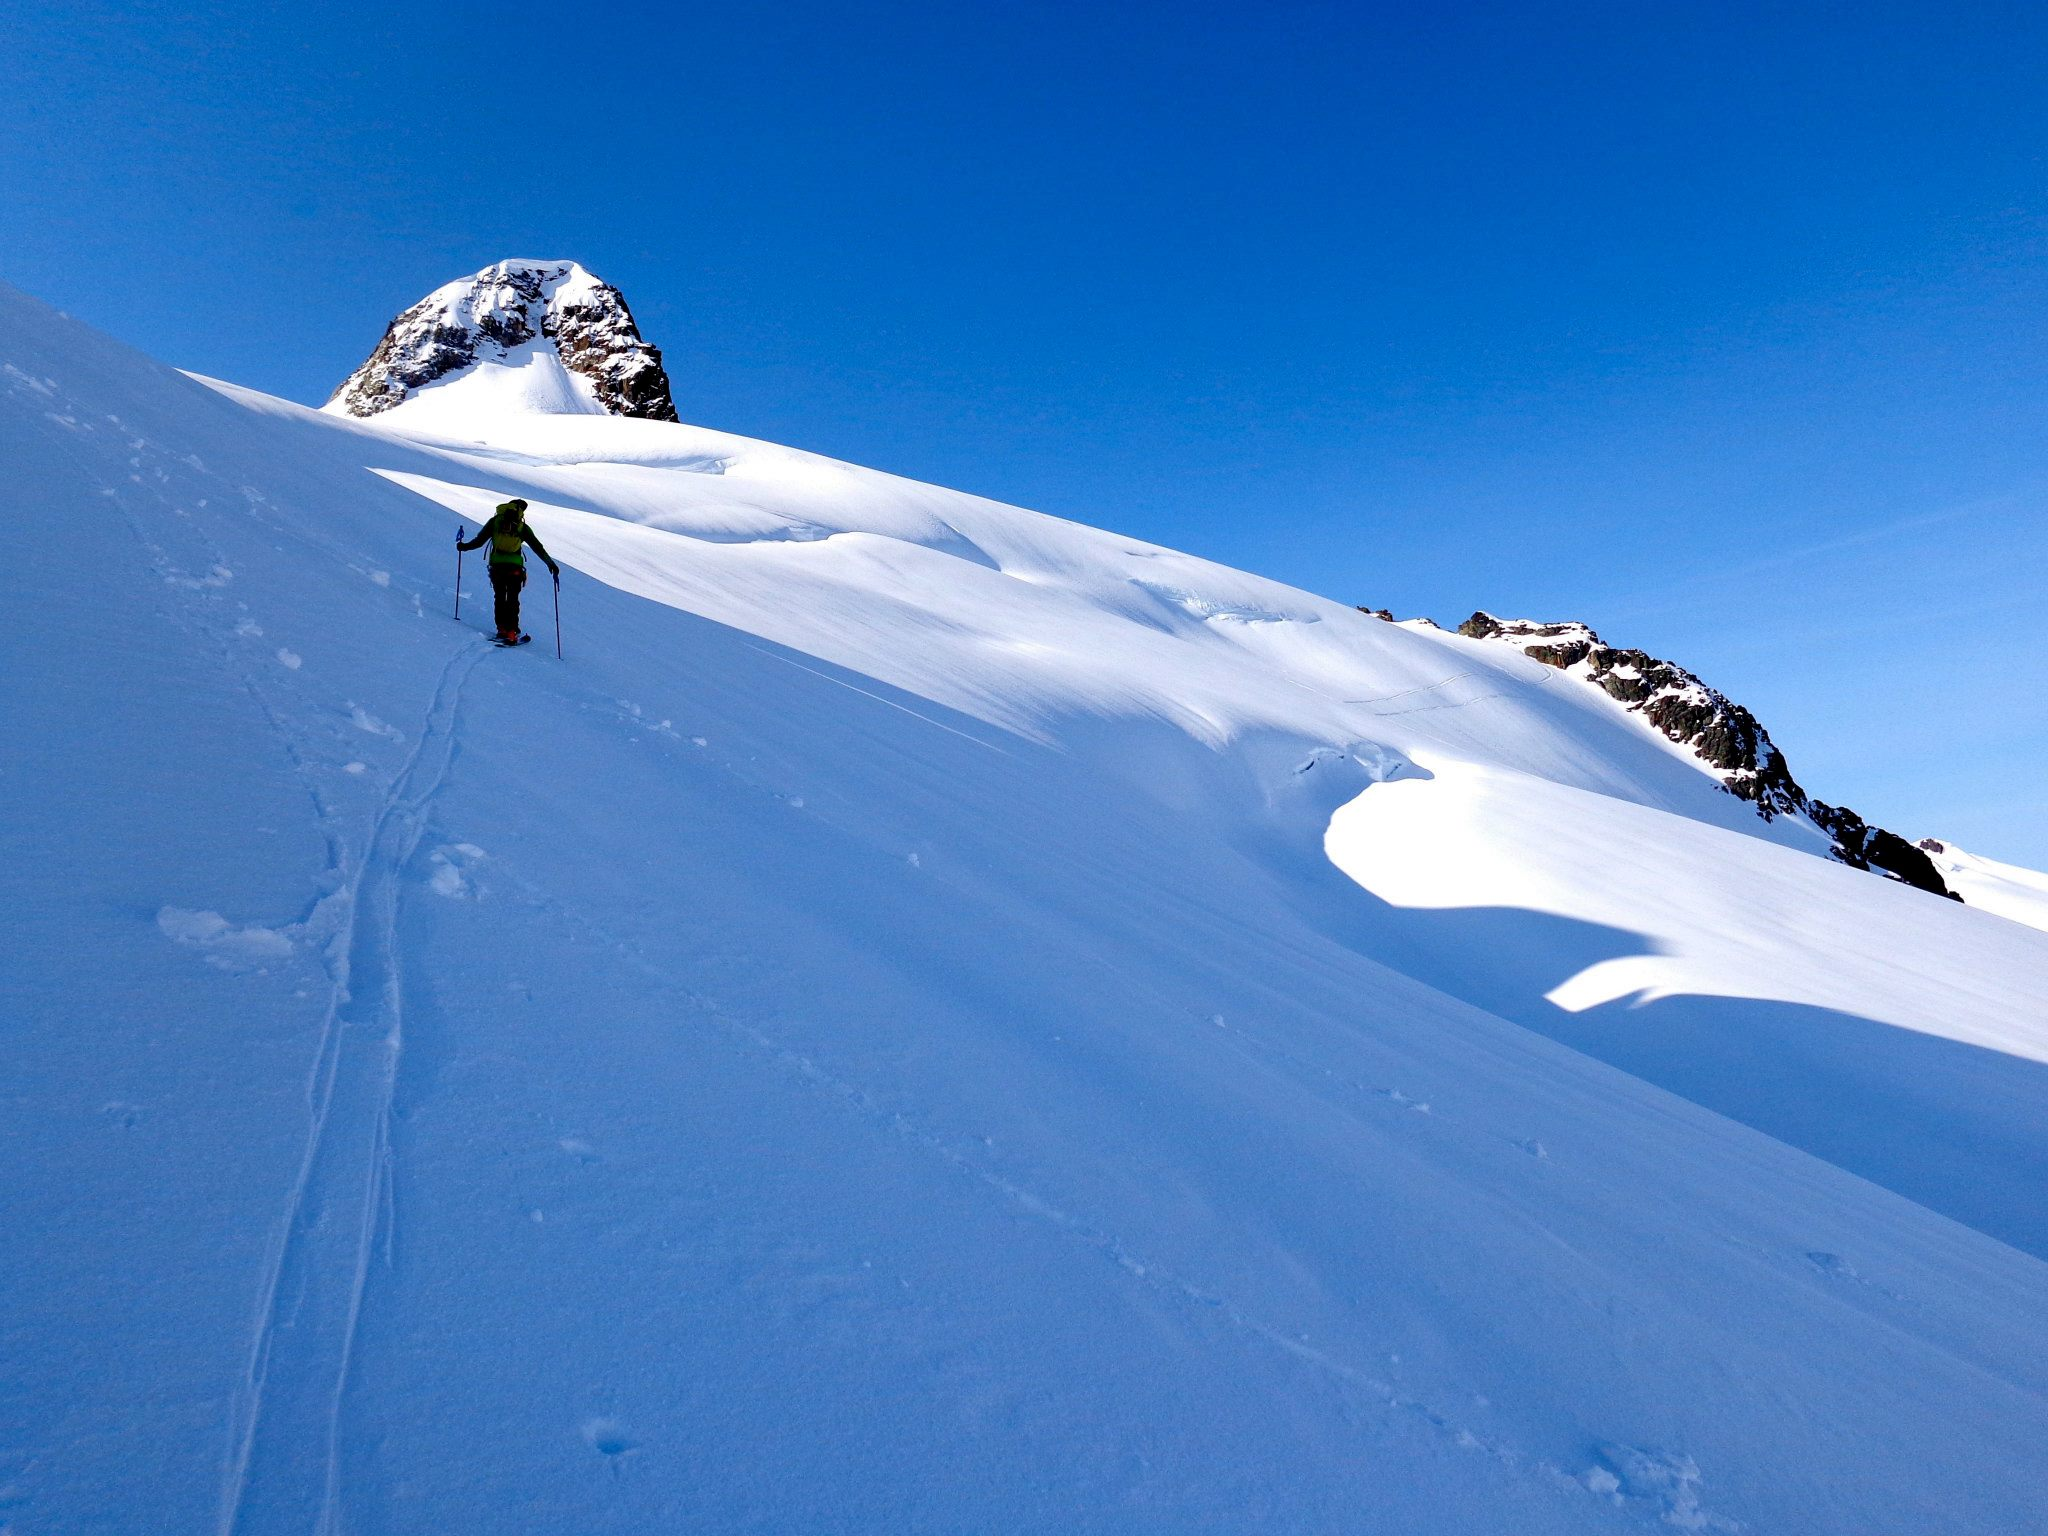 Picture by Jeff Dobronyi. Taken on the Overlord Glacier mid way between Blackcomb and Whistler on the Spearhead traverse.